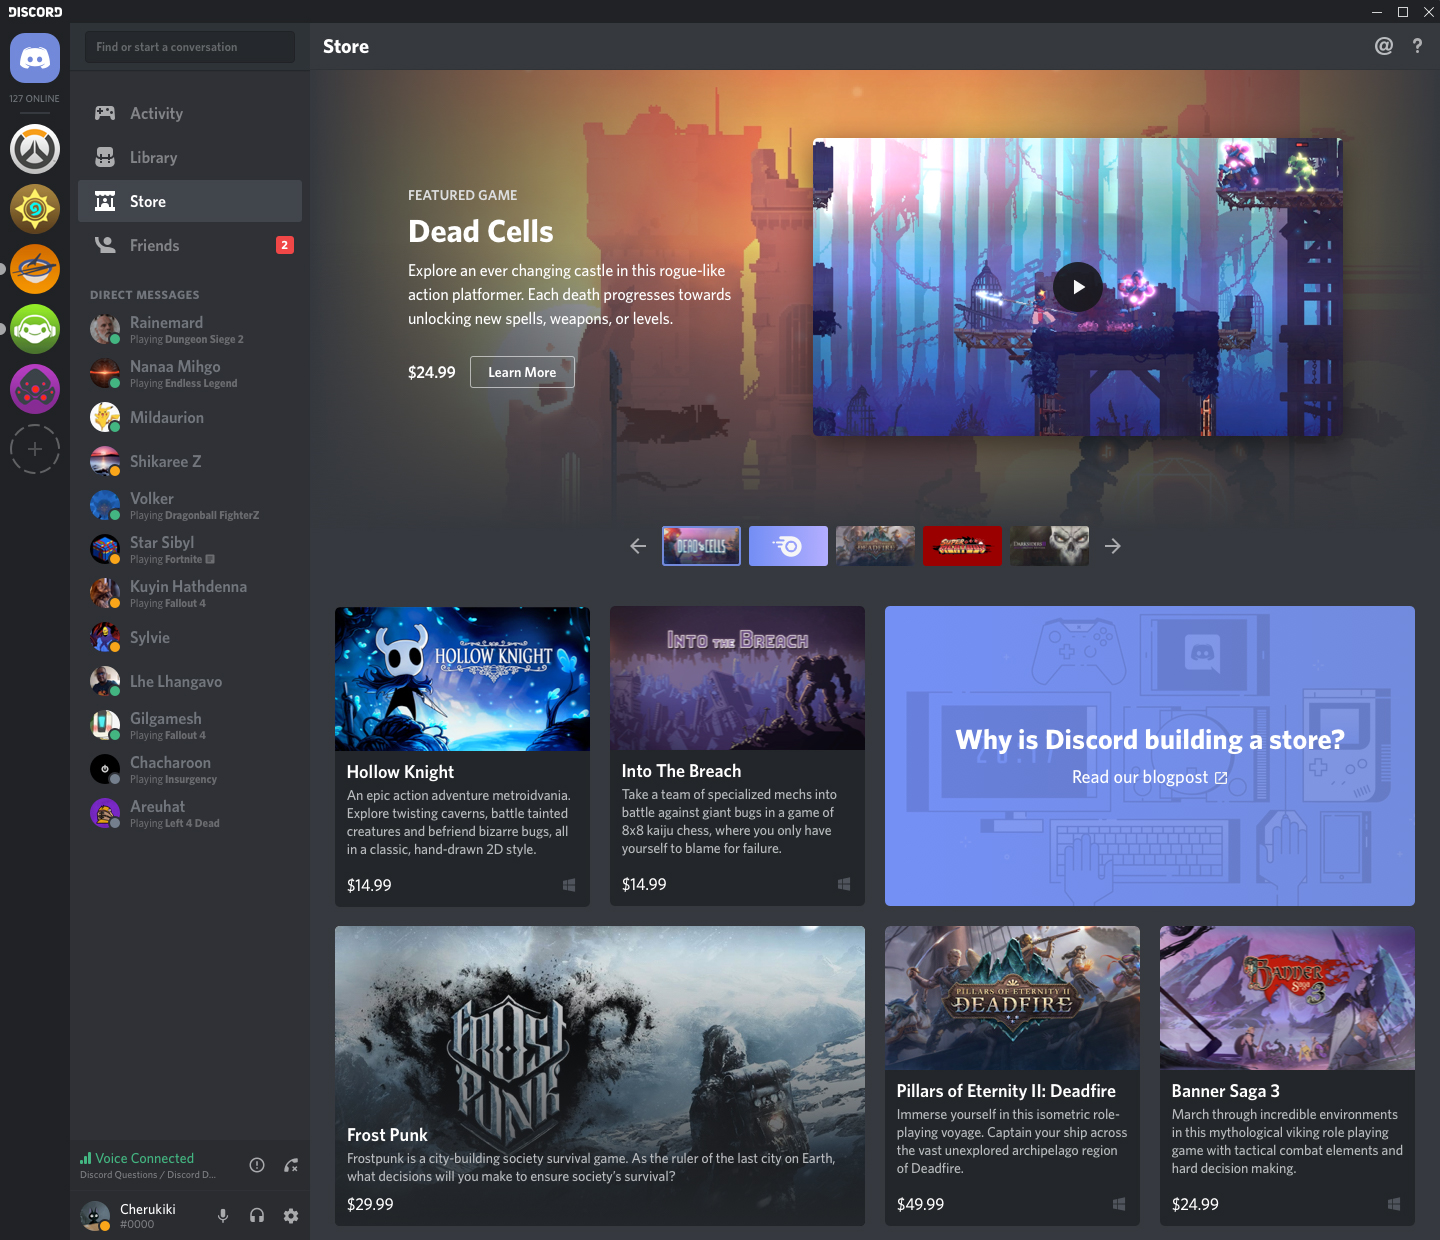 Discord will start selling games in a 'curated' store